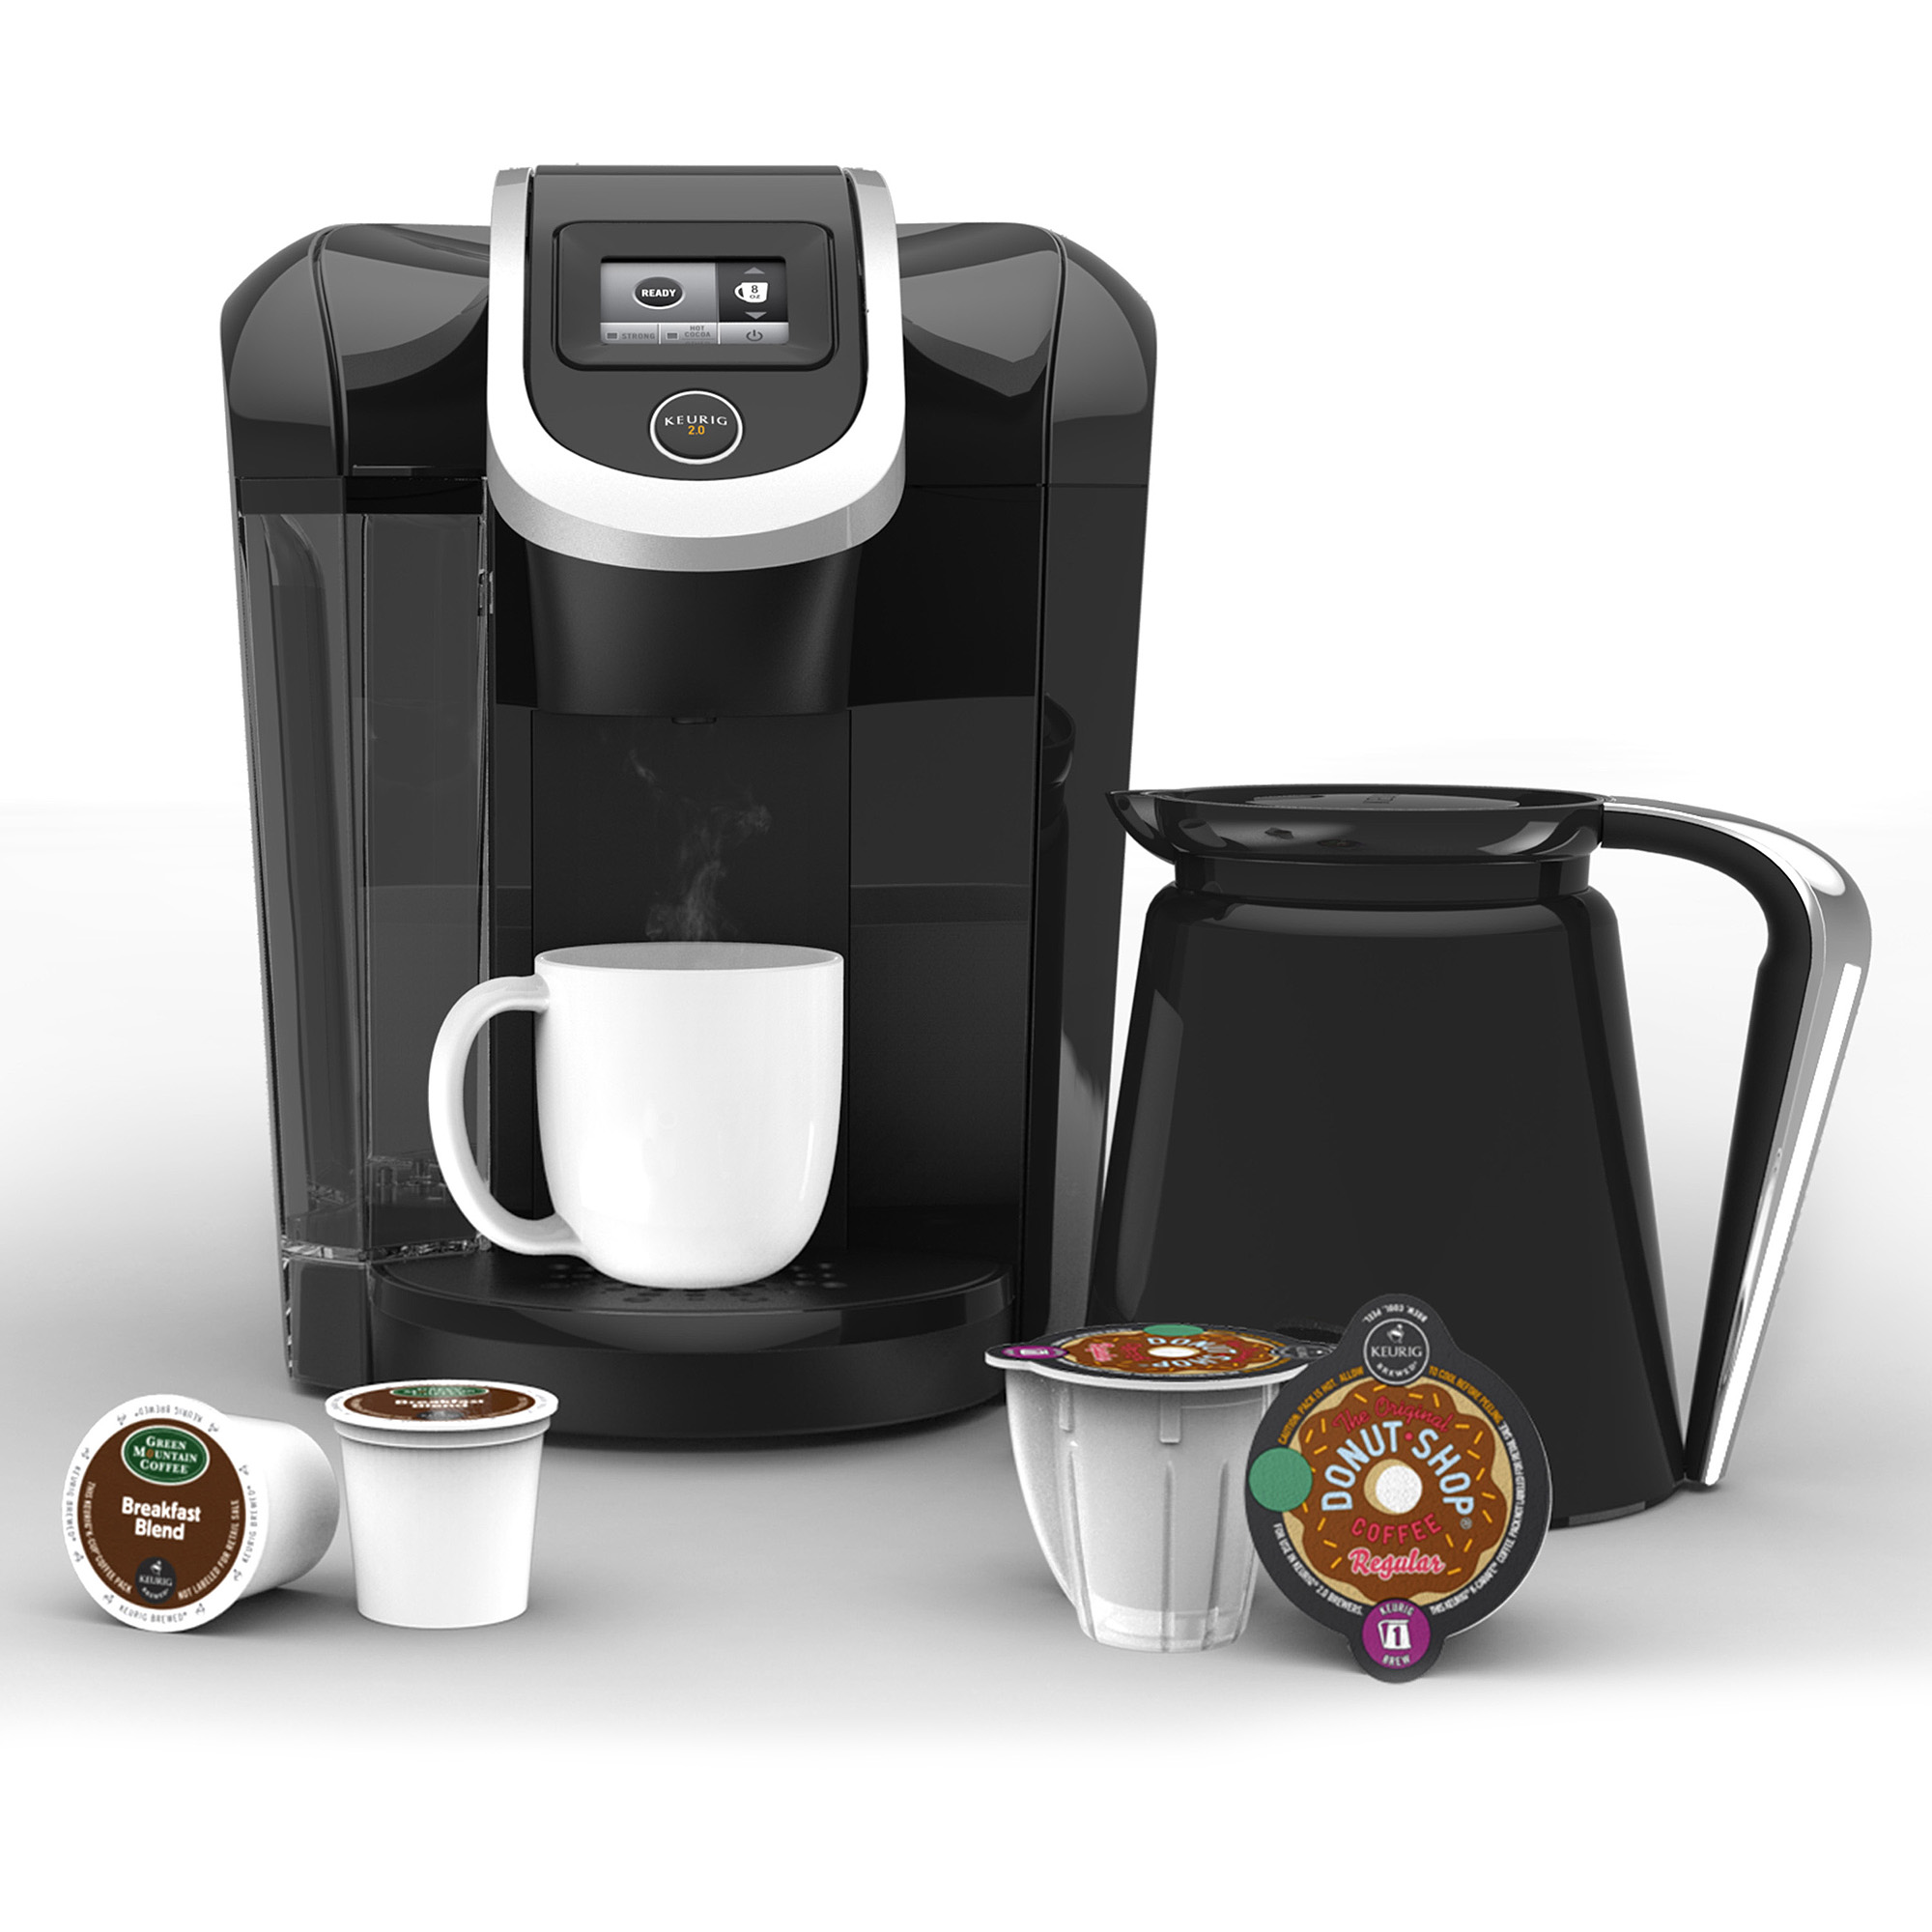 Keurig 2.0 K300 Coffee Brewing System with Carafe, Black